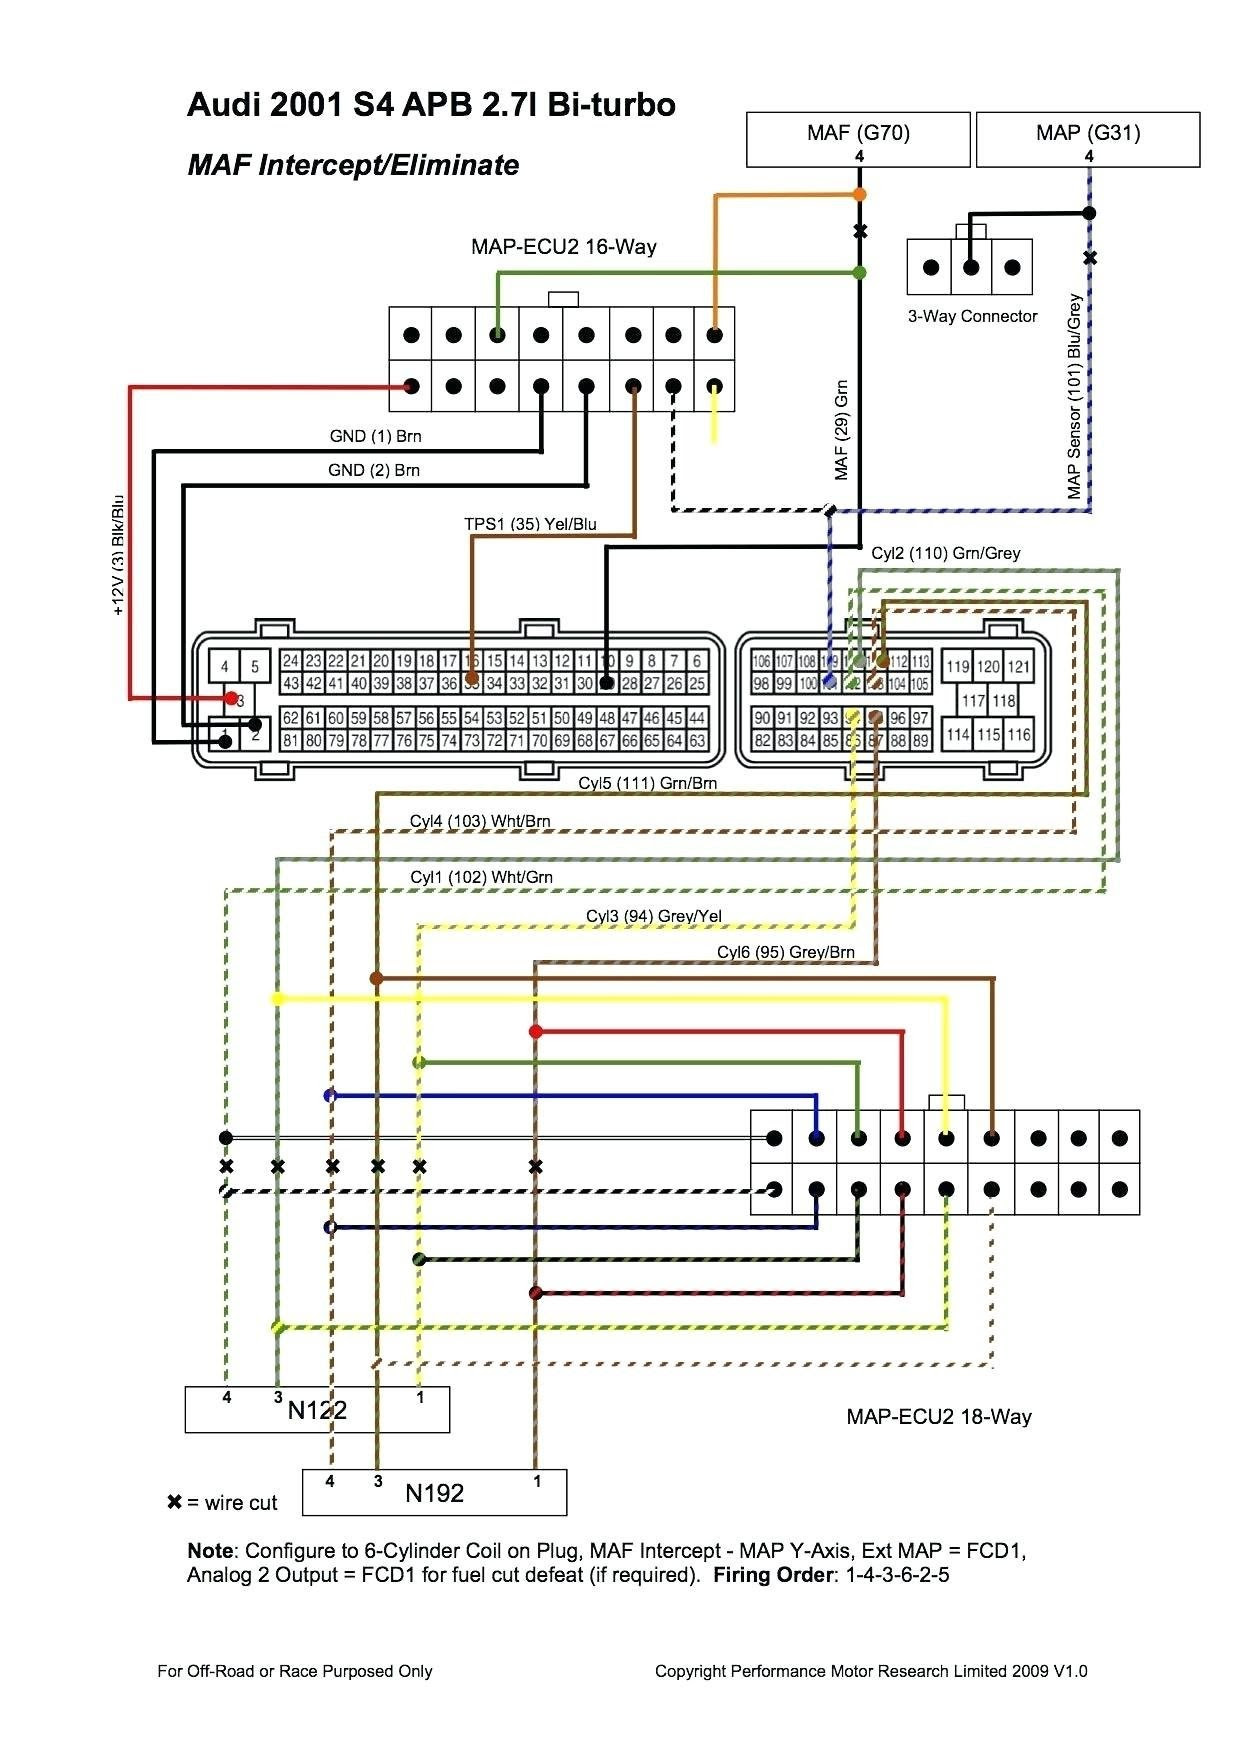 Download Diagram Anyone Have The 2013 Stereo Wiring Diagrams Wiring Diagram Full Quality 74diagrams Chefscuisiniersain Fr